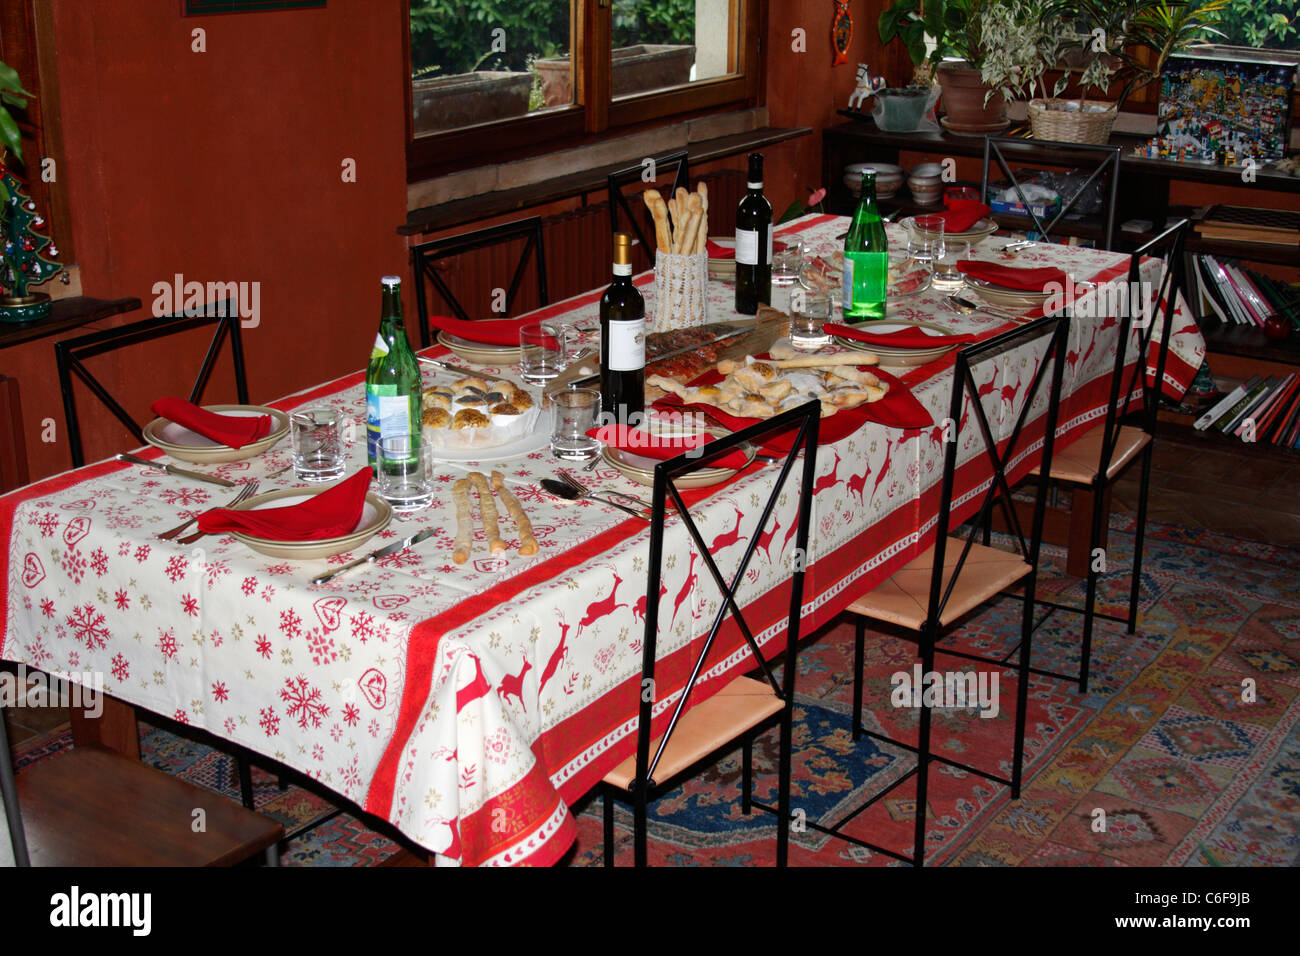 Table ready for Christmas - Stock Image